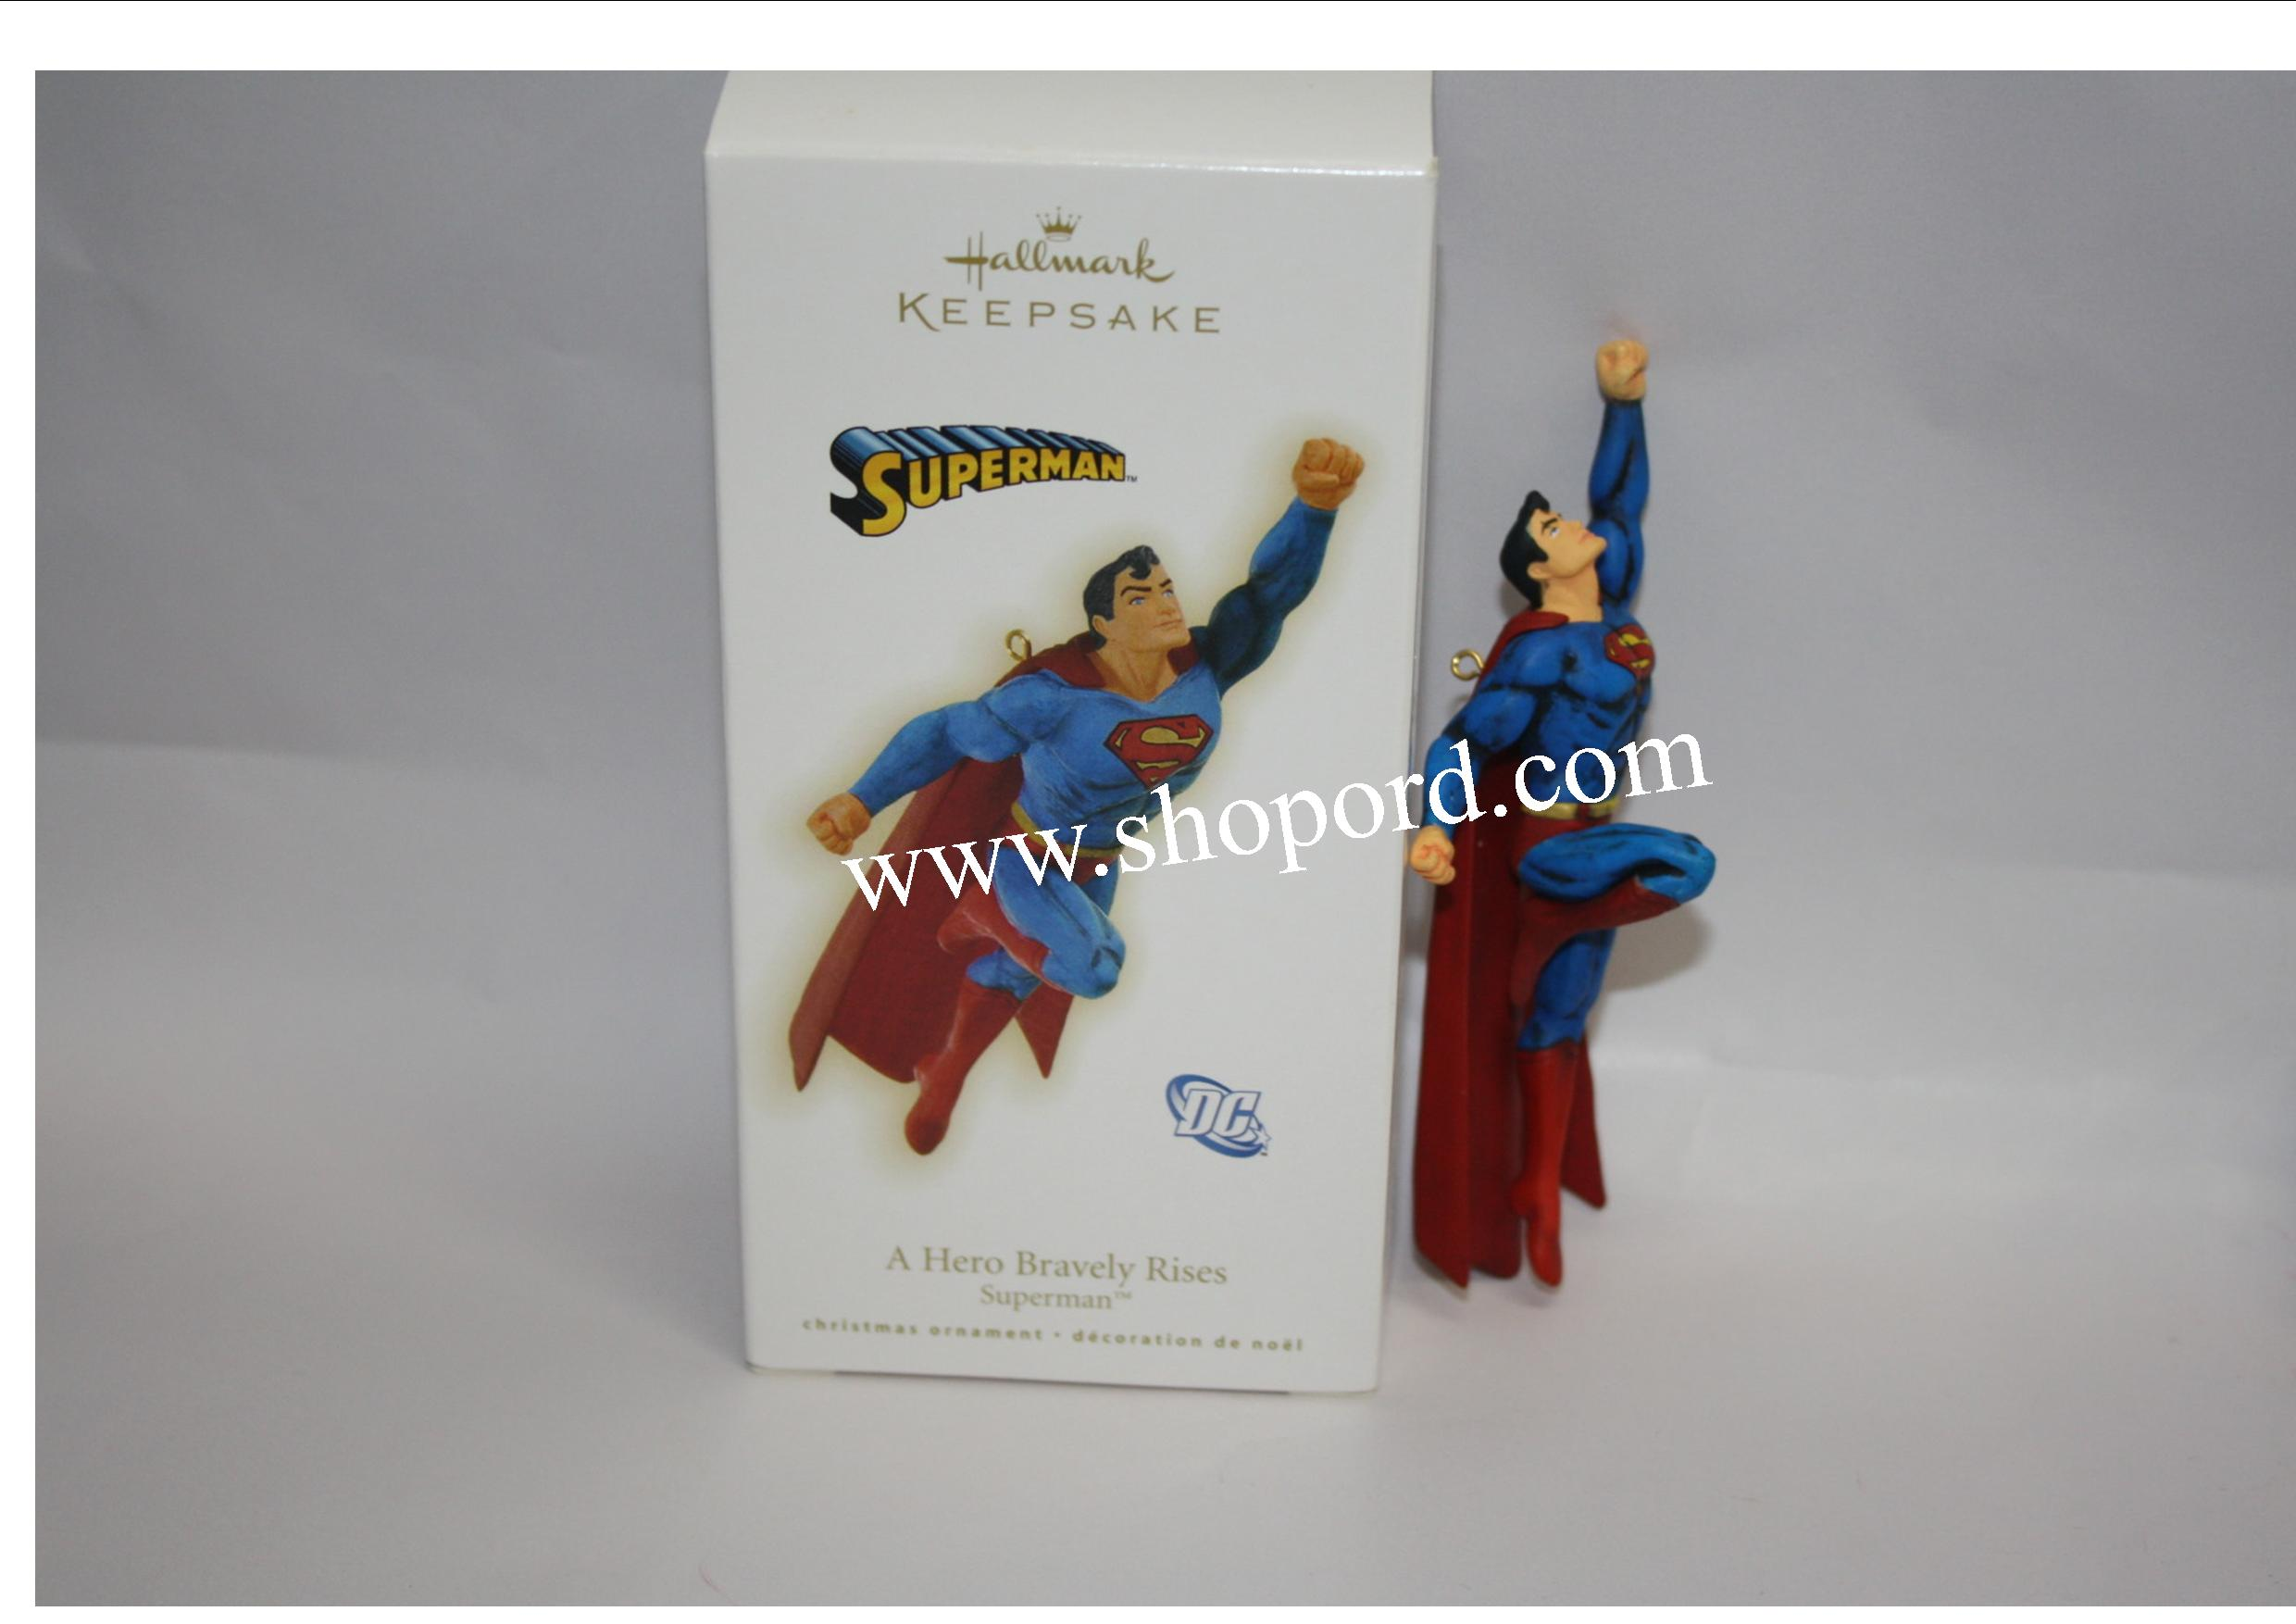 Hallmark 2009 A Hero Bravely Rises Superman Ornament QXI1005 Damaged Box